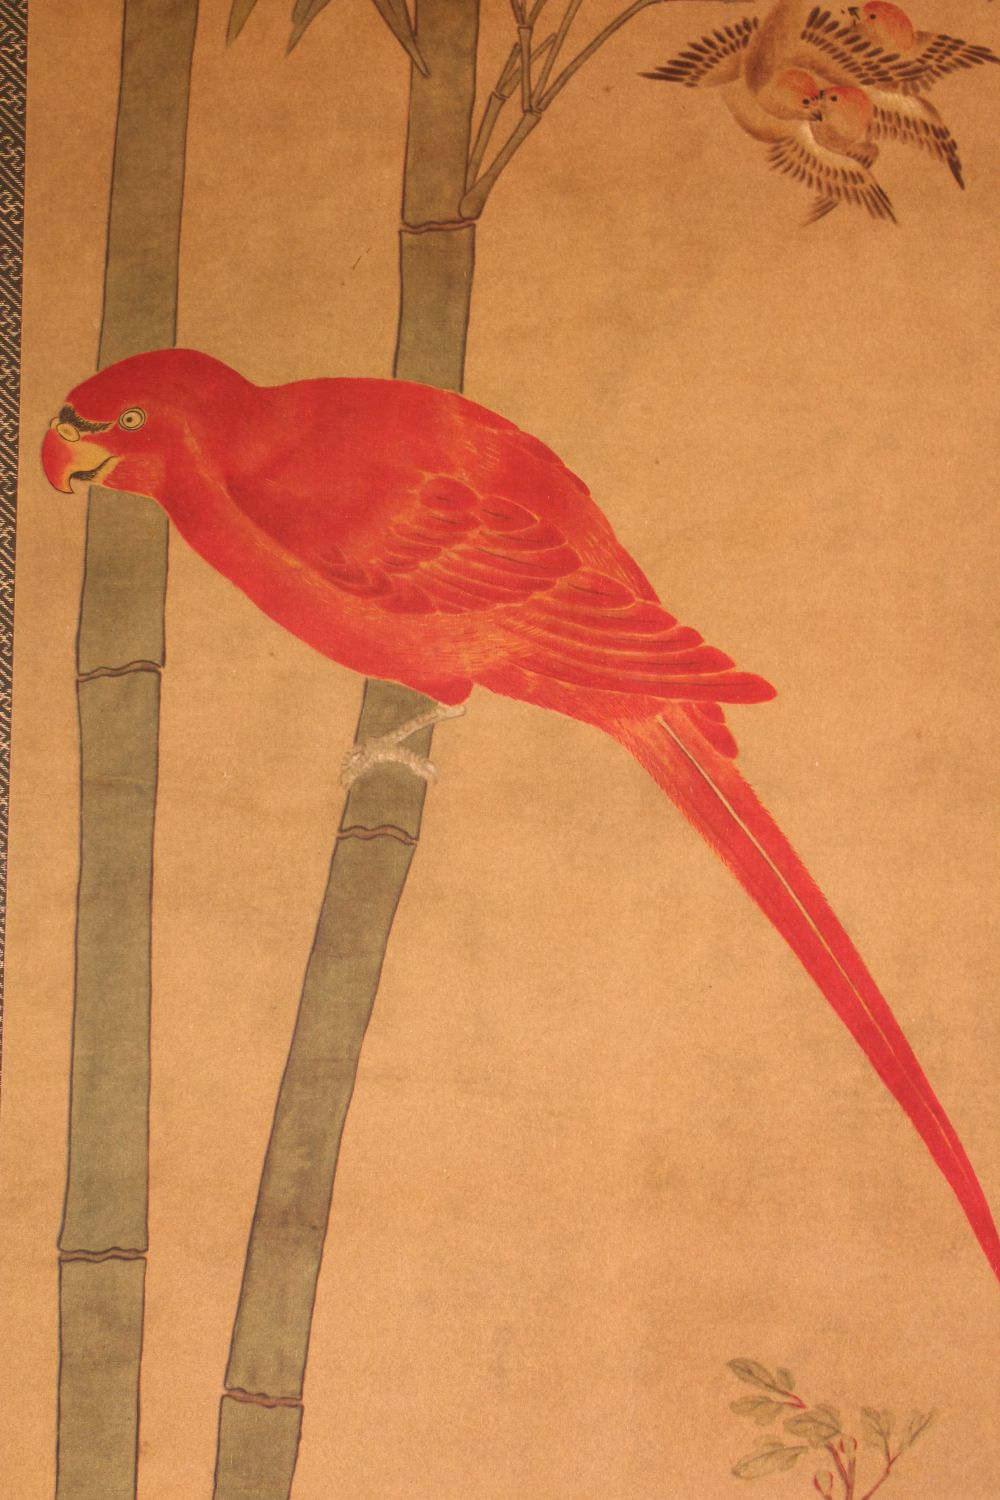 A 20TH CENTURY CHINESE PRINTED HANGING SCROLL PICTURE, depicting pheasants and other birds, 150cm - Image 2 of 4